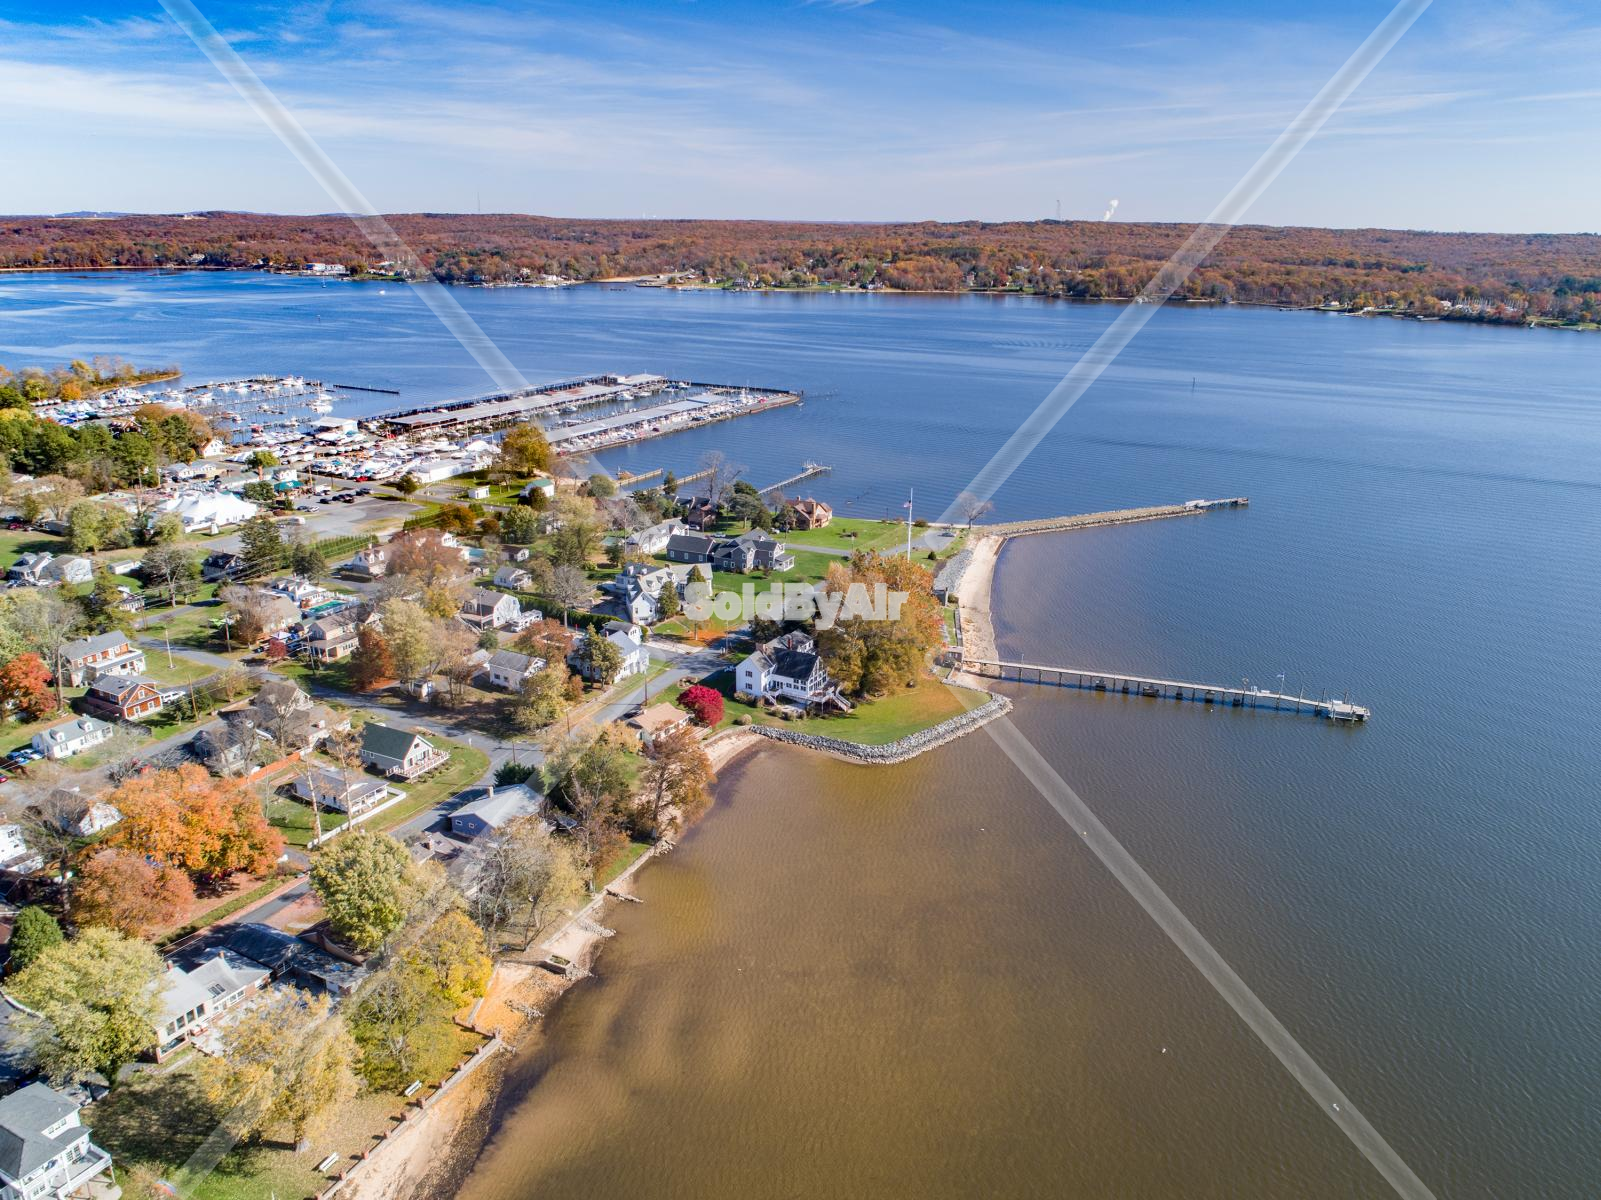 Drone Photo of North East River in Charlestown Maryland